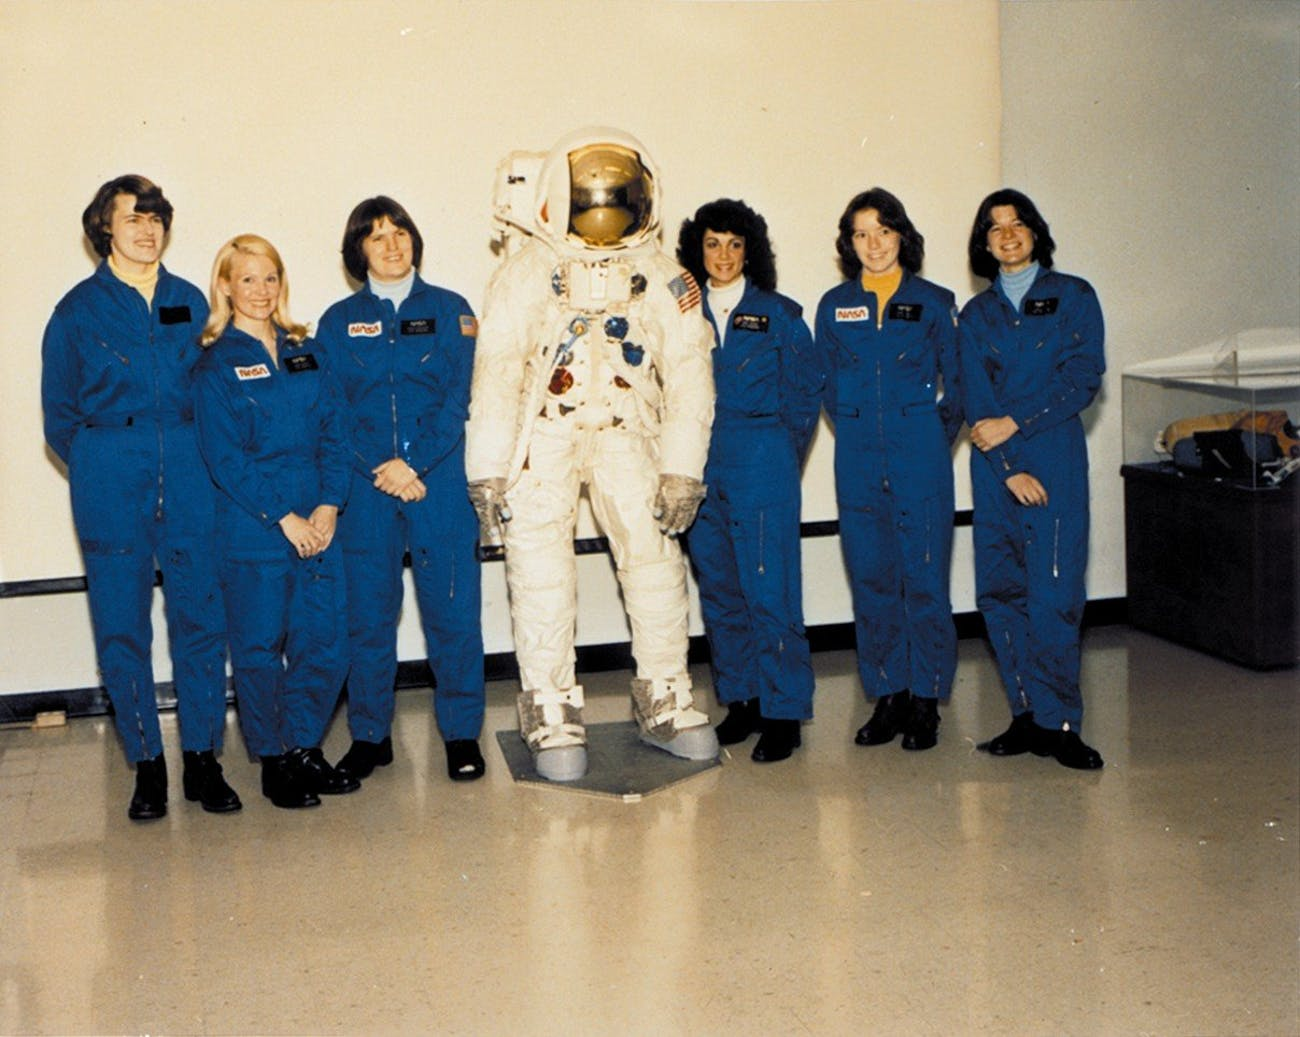 From left to right are Shannon W. Lucid, Margaret Rhea Seddon, Kathryn D. Sullivan, Judith A. Resnik, Anna L. Fisher, and Sally K. Ride. NASA selected all six women as their first female astronaut candidates in January 1978, allowing them to enroll in a training program that they completed in August 1979. Shannon W. Lucid was born on January 14, 1943 in Shanghai, China but considers Bethany, Oklahoma to be her hometown. She spent many years at the University of Oklahoma, receiving a Bachelor in chemistry in 1963, a Master in biochemistry in 1970, and a Doctorate in biochemistry in 1973. Dr. Lucid flew on the STS-51G Discovery, STS-34 Atlantis, STS-43 Atlantis, and STS-58 Columbia shuttle missions, setting the record for female astronauts by logging 838 hours and 54 minutes in space. She also currently holds the United States single mission space flight endurance record for her 188 days on the Russian Space Station Mir. From February 2002 to September 2003, she served as chief scientist at NASA Headquarters before returning to JSC to help with the Return to Flight program after the STS-107 accident. Born November 8, 1947, in Murfreesboro, Tennessee, Margaret Rhea Seddon received a Doctorate of Medicine in 1973 from the University of Tennessee. She flew on space missions STS-51 Discovery, STS-40 Columbia, and STS-58 Columbia for a total of over 722 hours in space. Dr. Seddon retired from NASA in November 1997, taking on a position as the Assistant Chief Medical Officer of the Vanderbilt Medical Group in Nashville, Tennessee. Kathryn Sullivan was born October 3, 1951 in Patterson, New Jersey but considers Woodland Hills, California to be her hometown. She received a Bachelor in Earth Sciences from the University of California, Santa Cruz in 1973 and a Doctorate in Geology from Dalhousie University in Halifax, Nova Scotia in 1978. She flew on space missions STS-41G, STS-31, and STS-45 and logged a total of 532 hours in space. Dr. Sullivan left NASA in August 1992 to ass